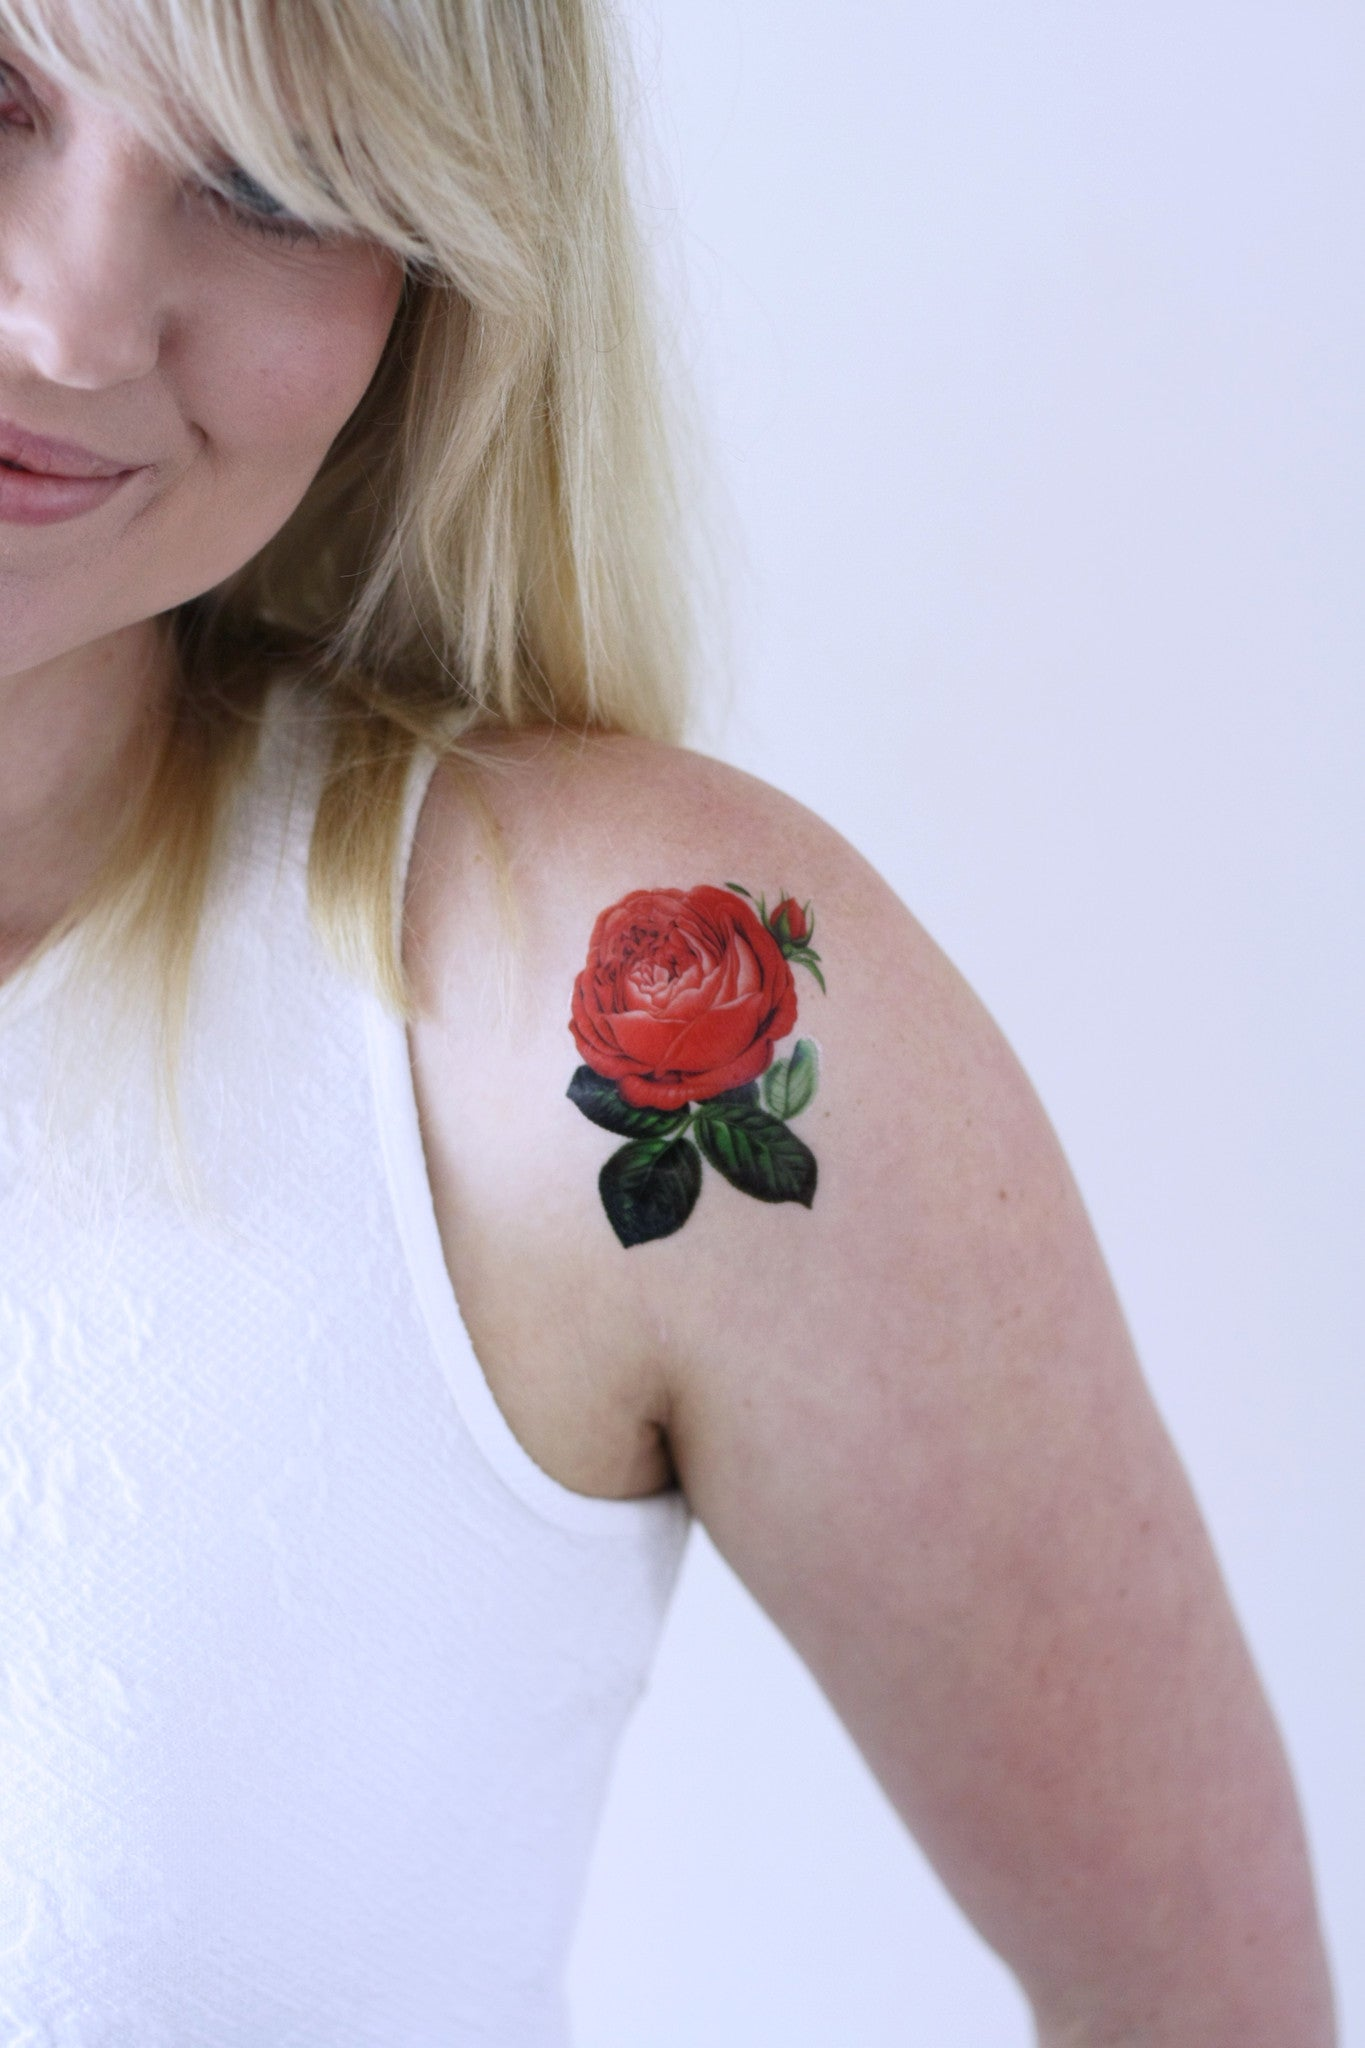 Small Red Rose Temporary Tattoo Temporary Tattoos By Tattoorary